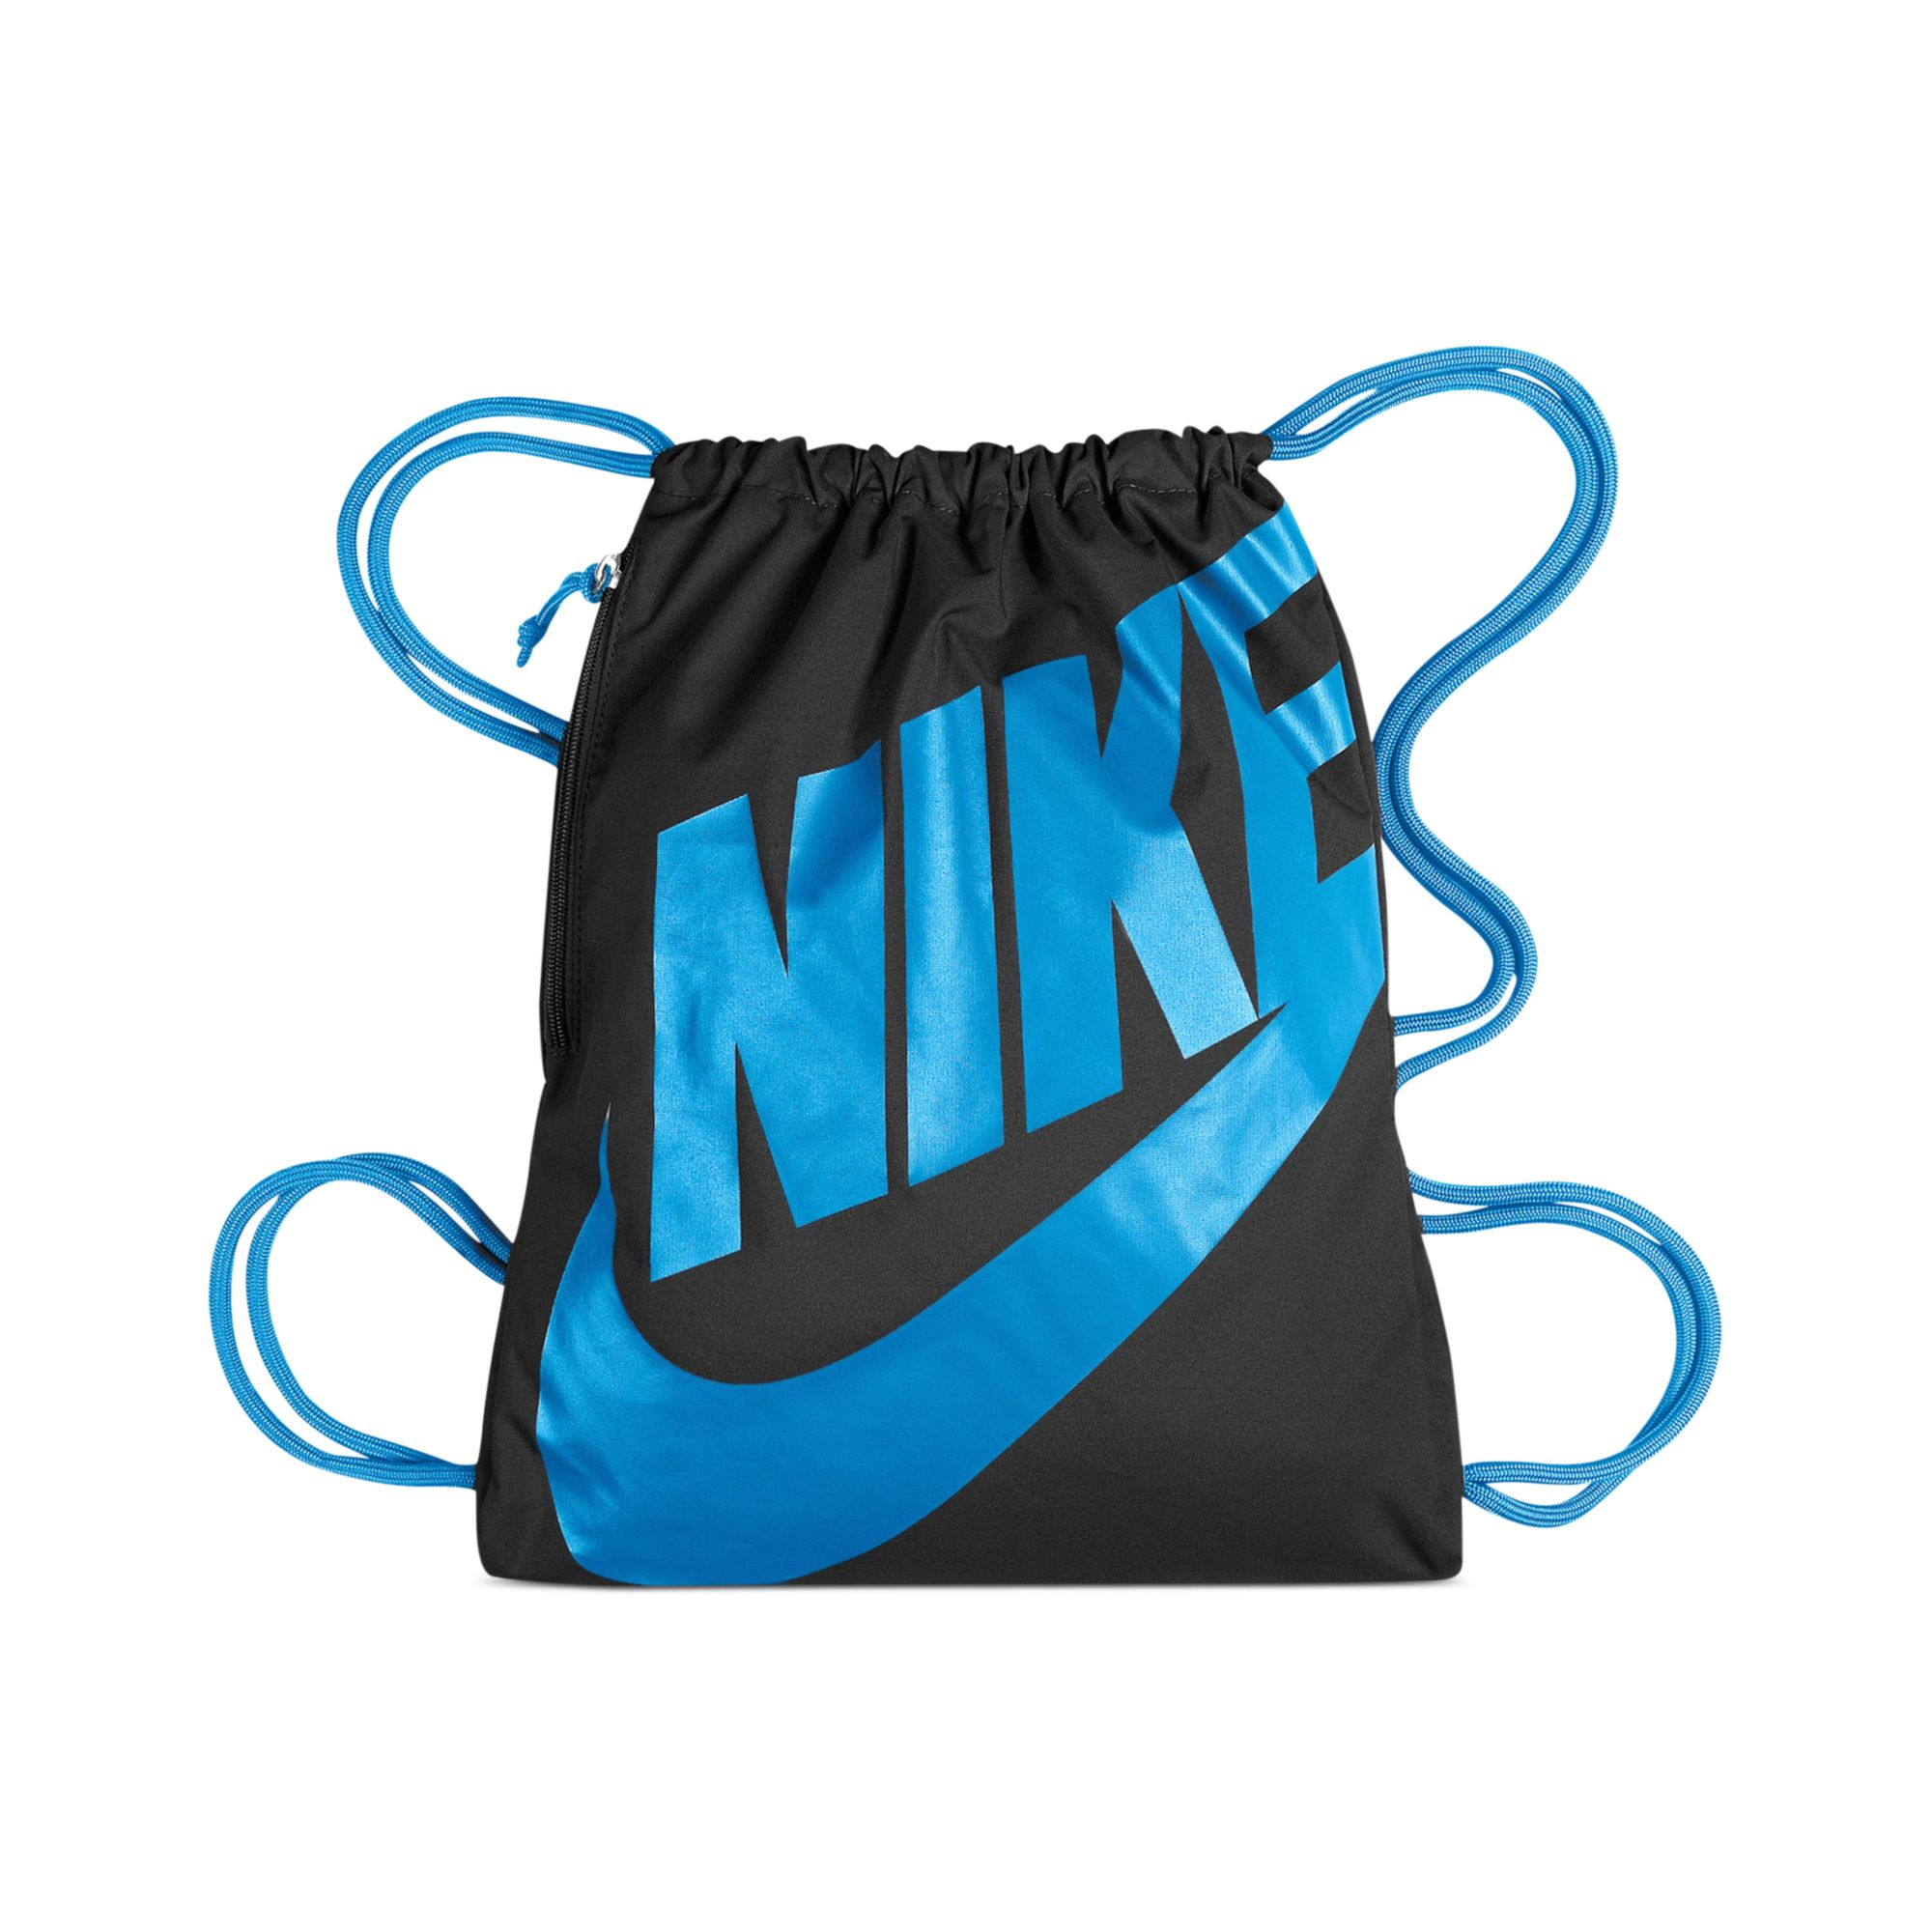 Lyst - Nike Heritage Gymsack in Blue for Men d4409d0aa5